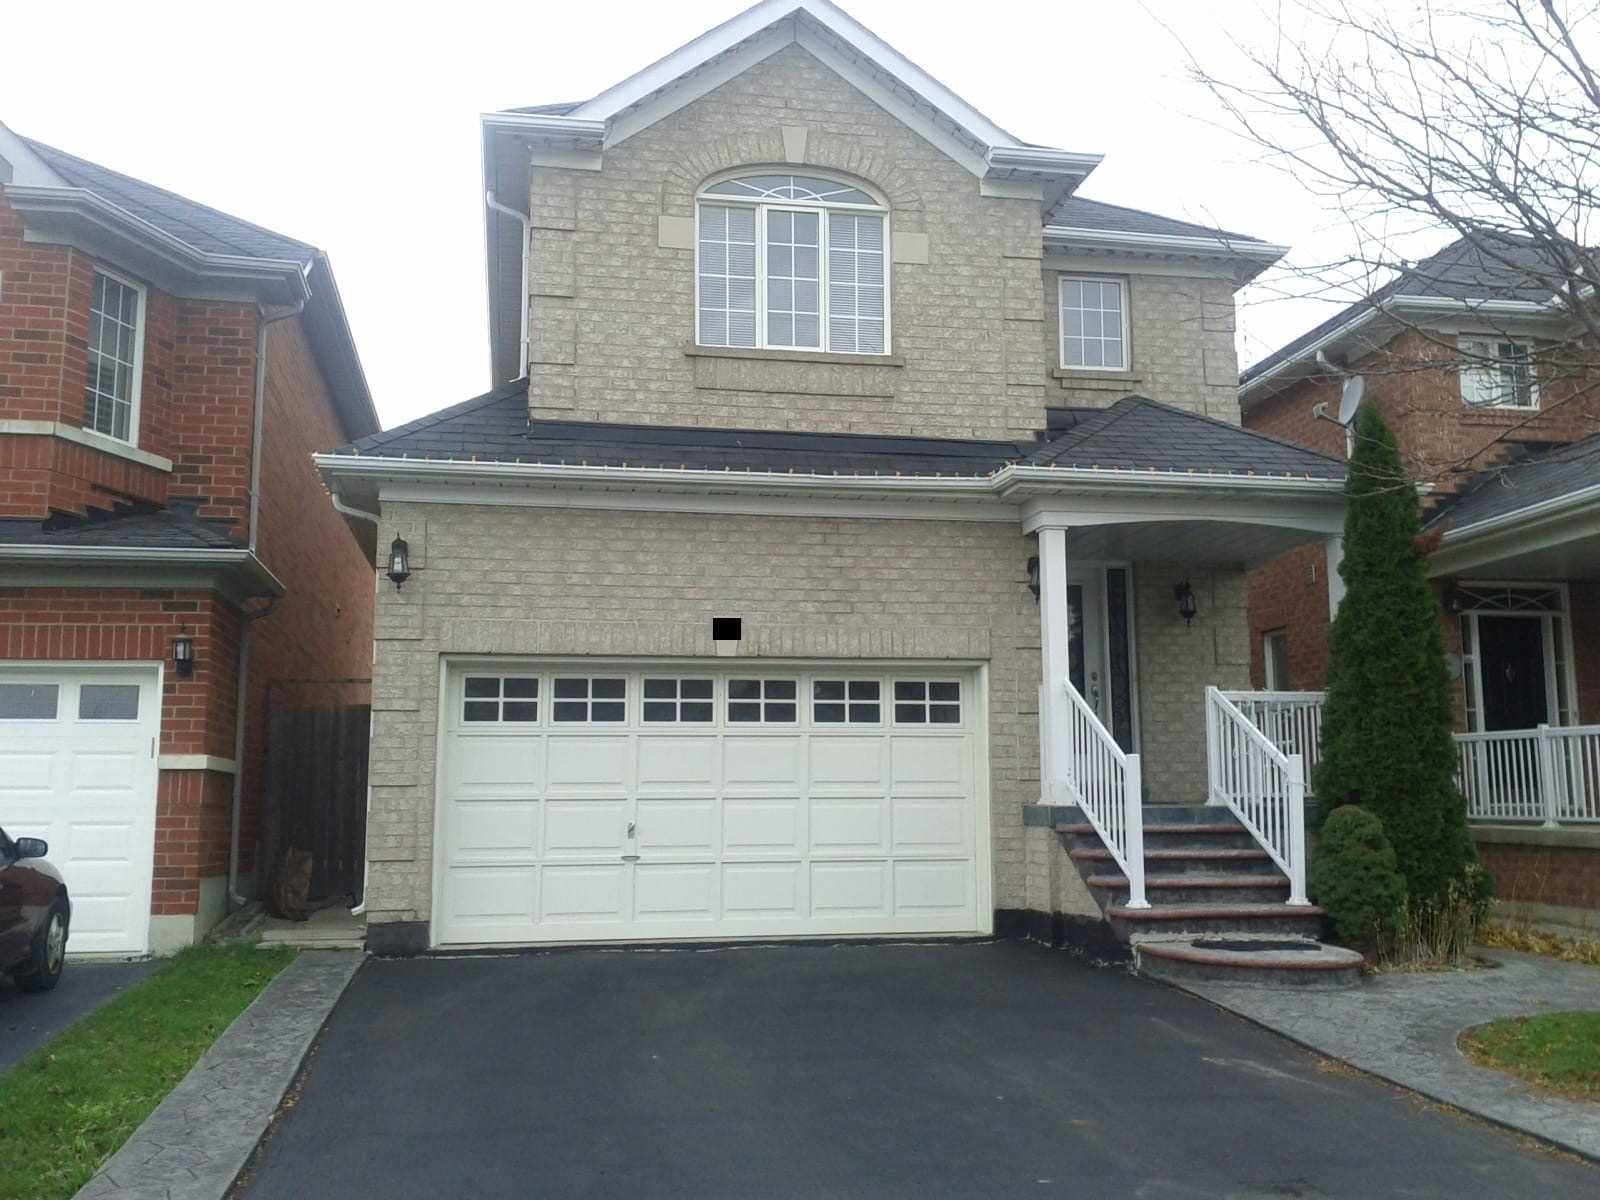 Detached house For Lease In Brampton - 38 Gold Hills Rd, Brampton, Ontario, Canada L6X 4V2 , 1 Bedroom Bedrooms, ,1 BathroomBathrooms,Detached,For Lease,Bsmt,Gold Hills